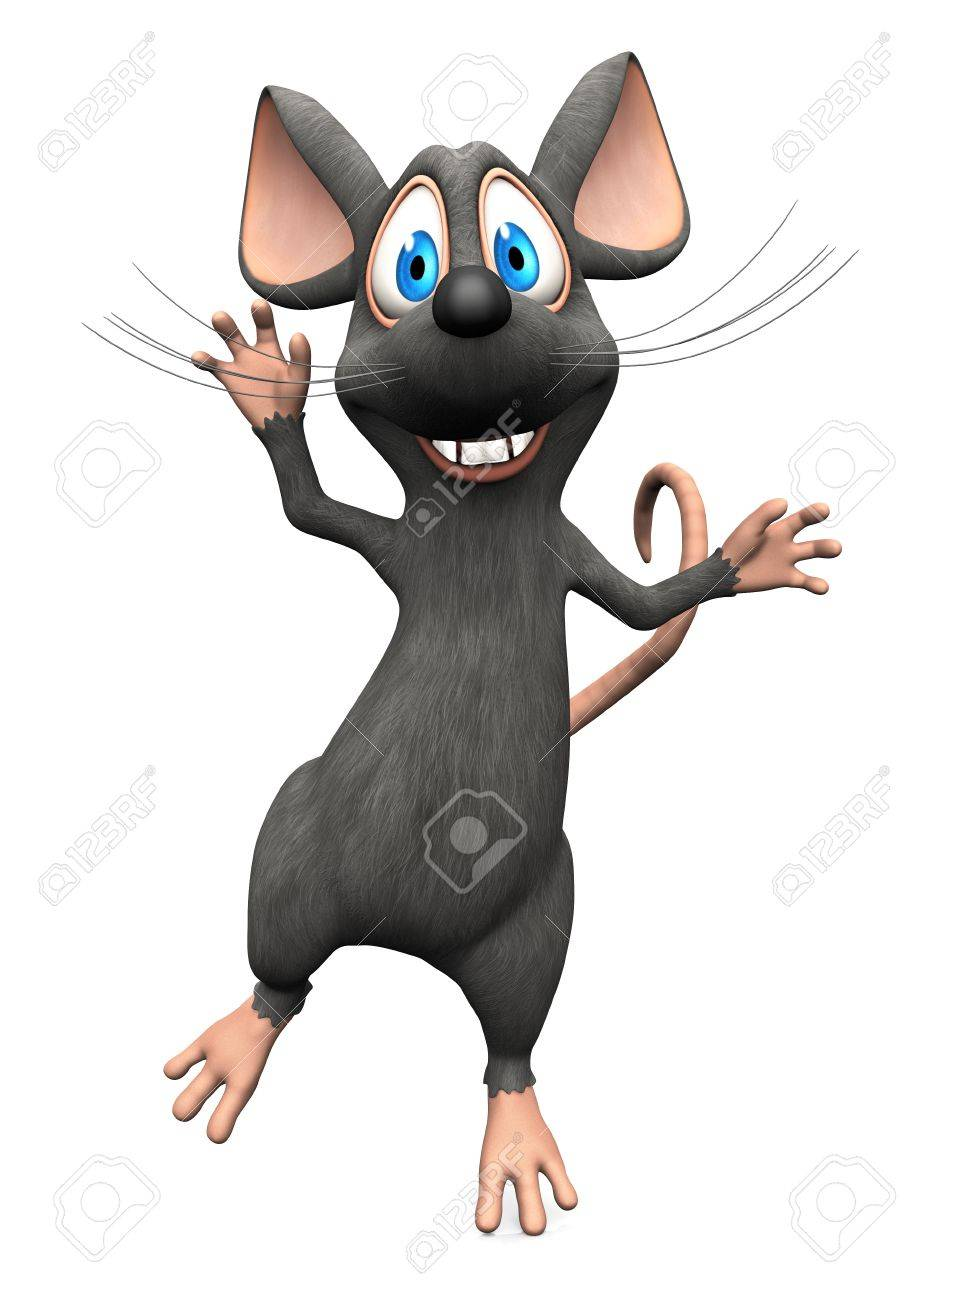 A cute smiling cartoon mouse jumping for joy. White background. Stock Photo - 36053417